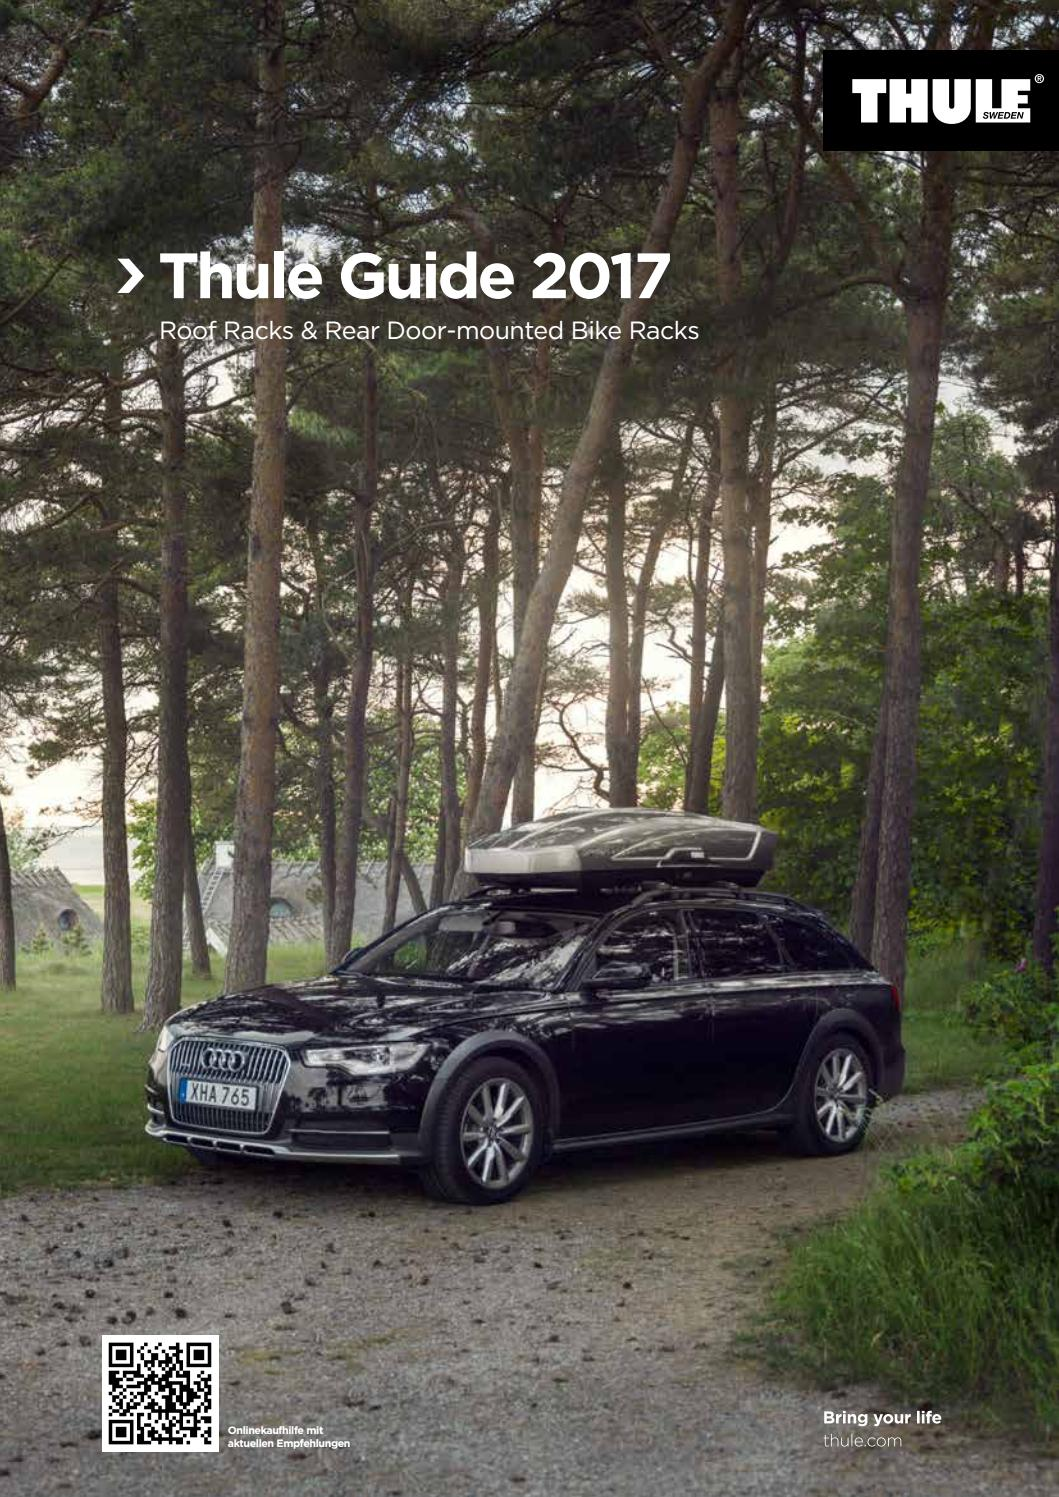 2017 De Thule Fitguide By Technomag Ch Issuu